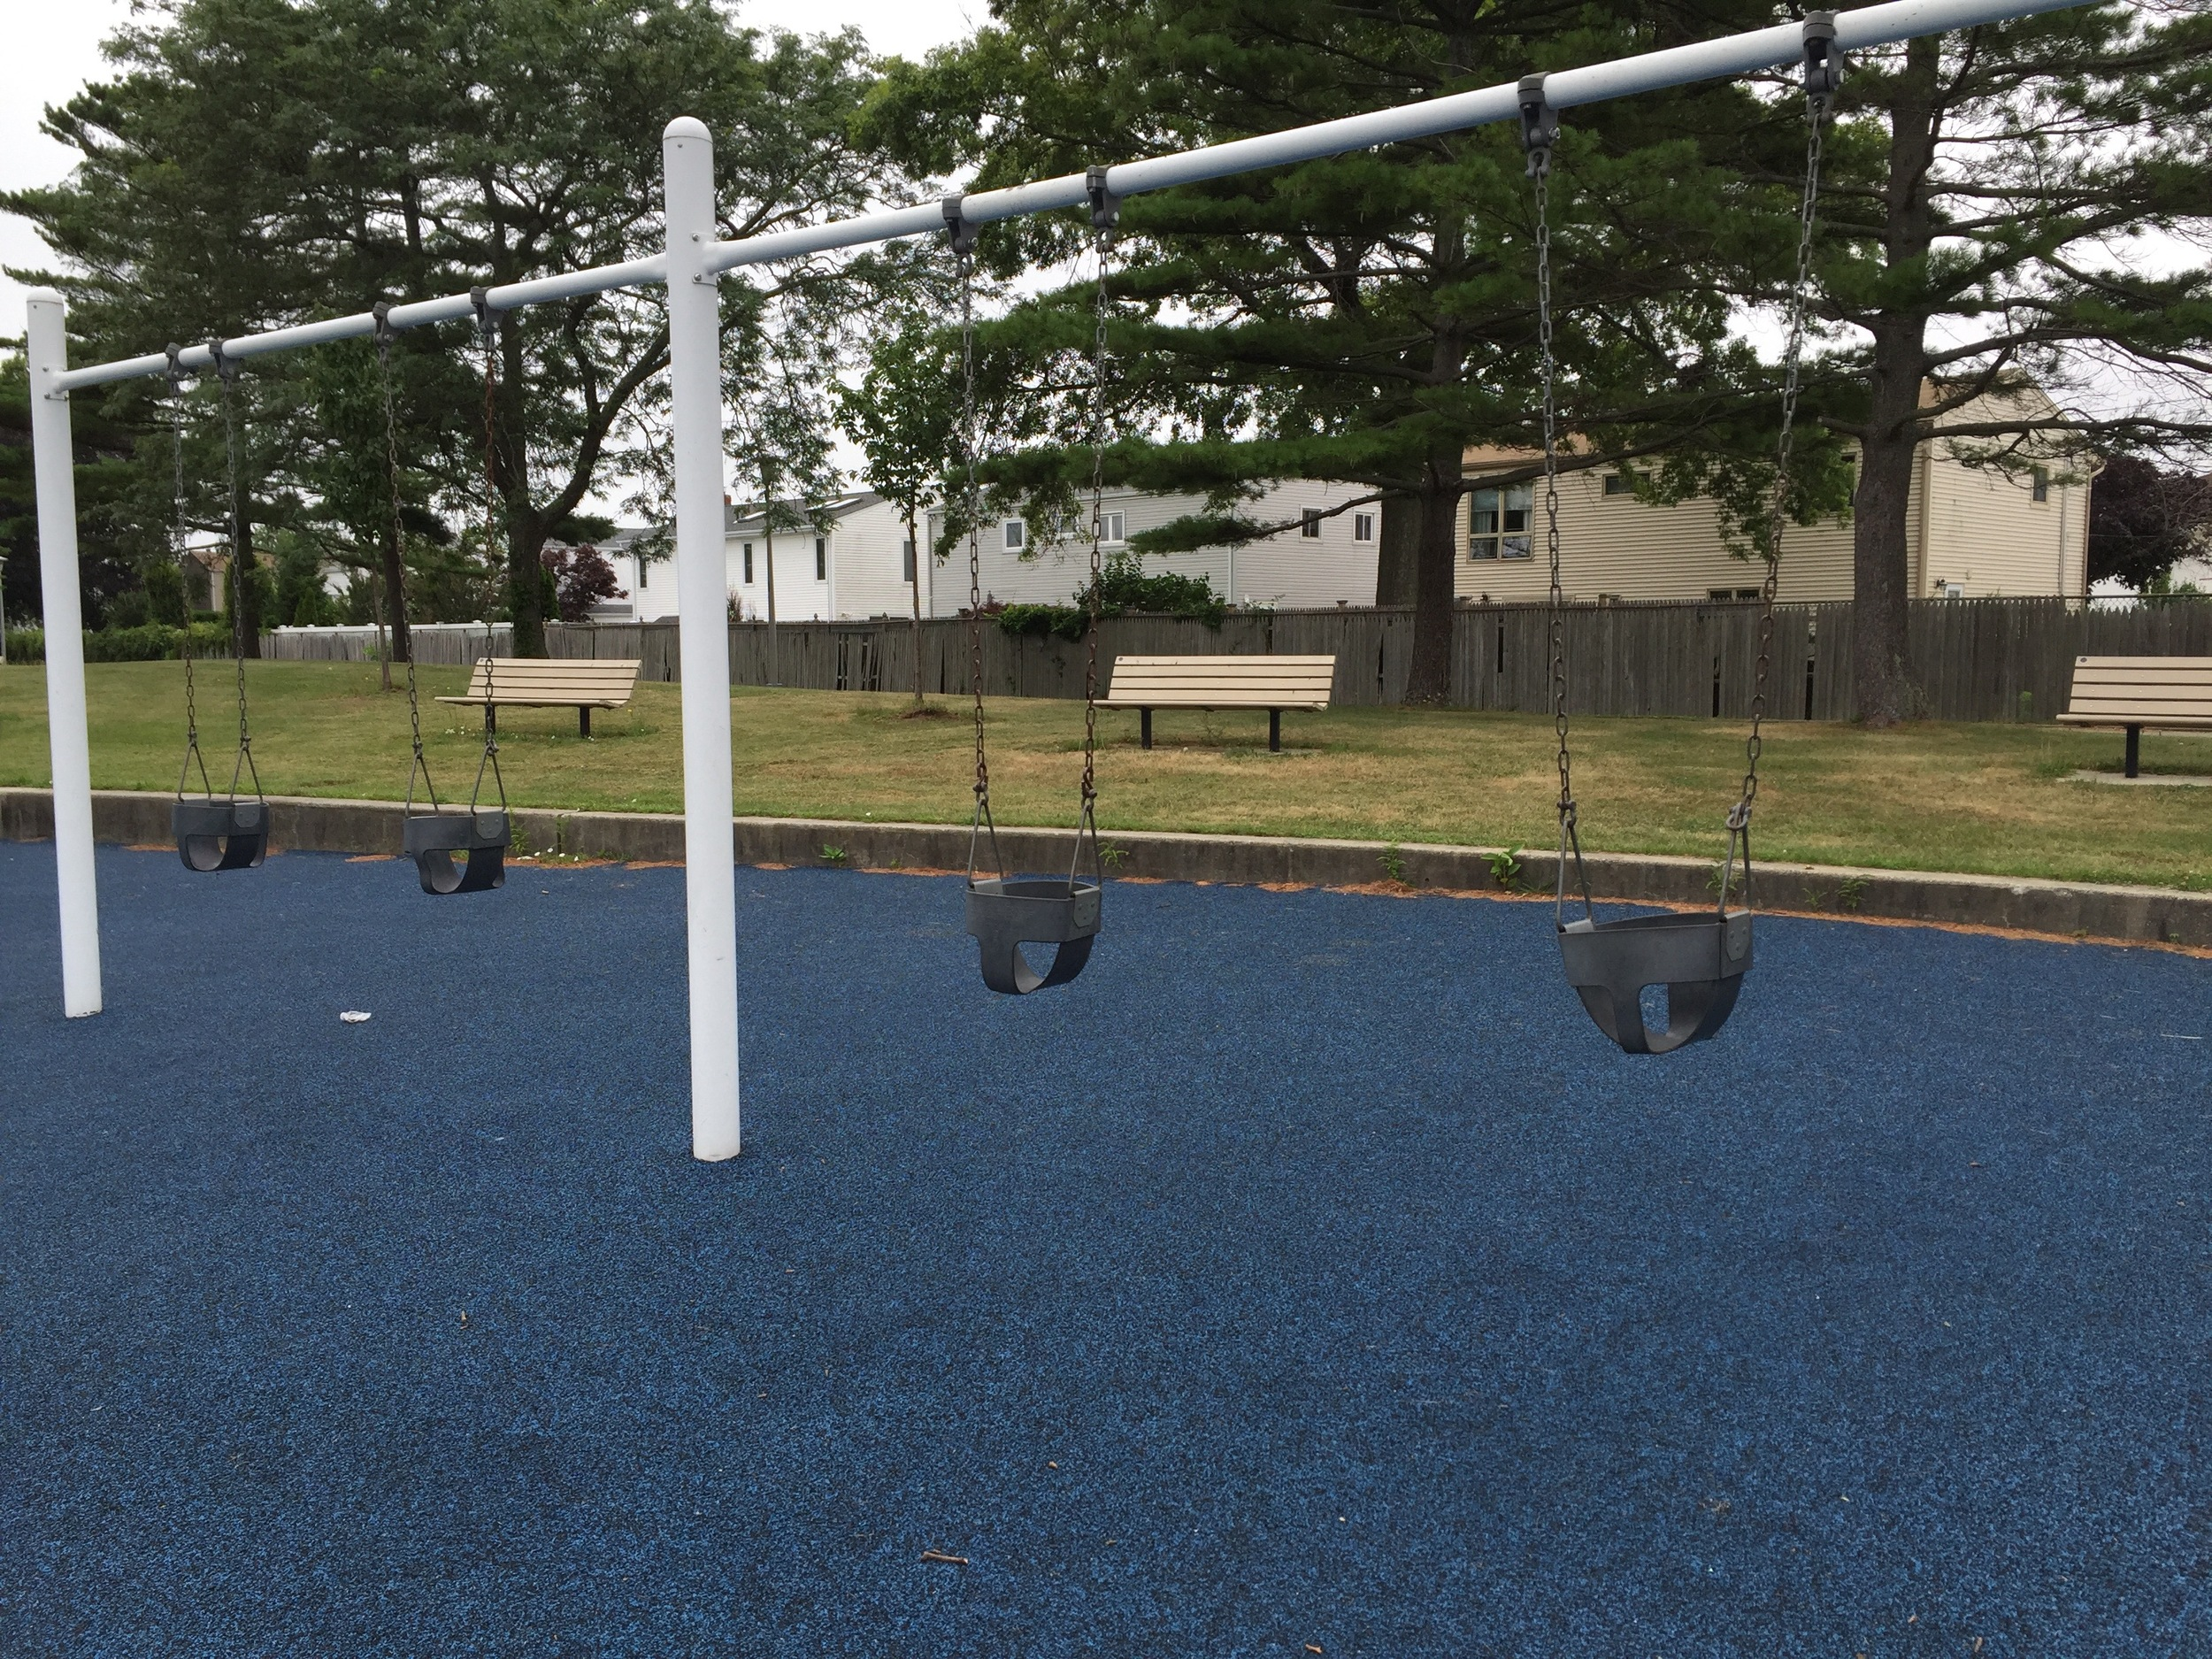 Marina playground swings at Wantagh Park